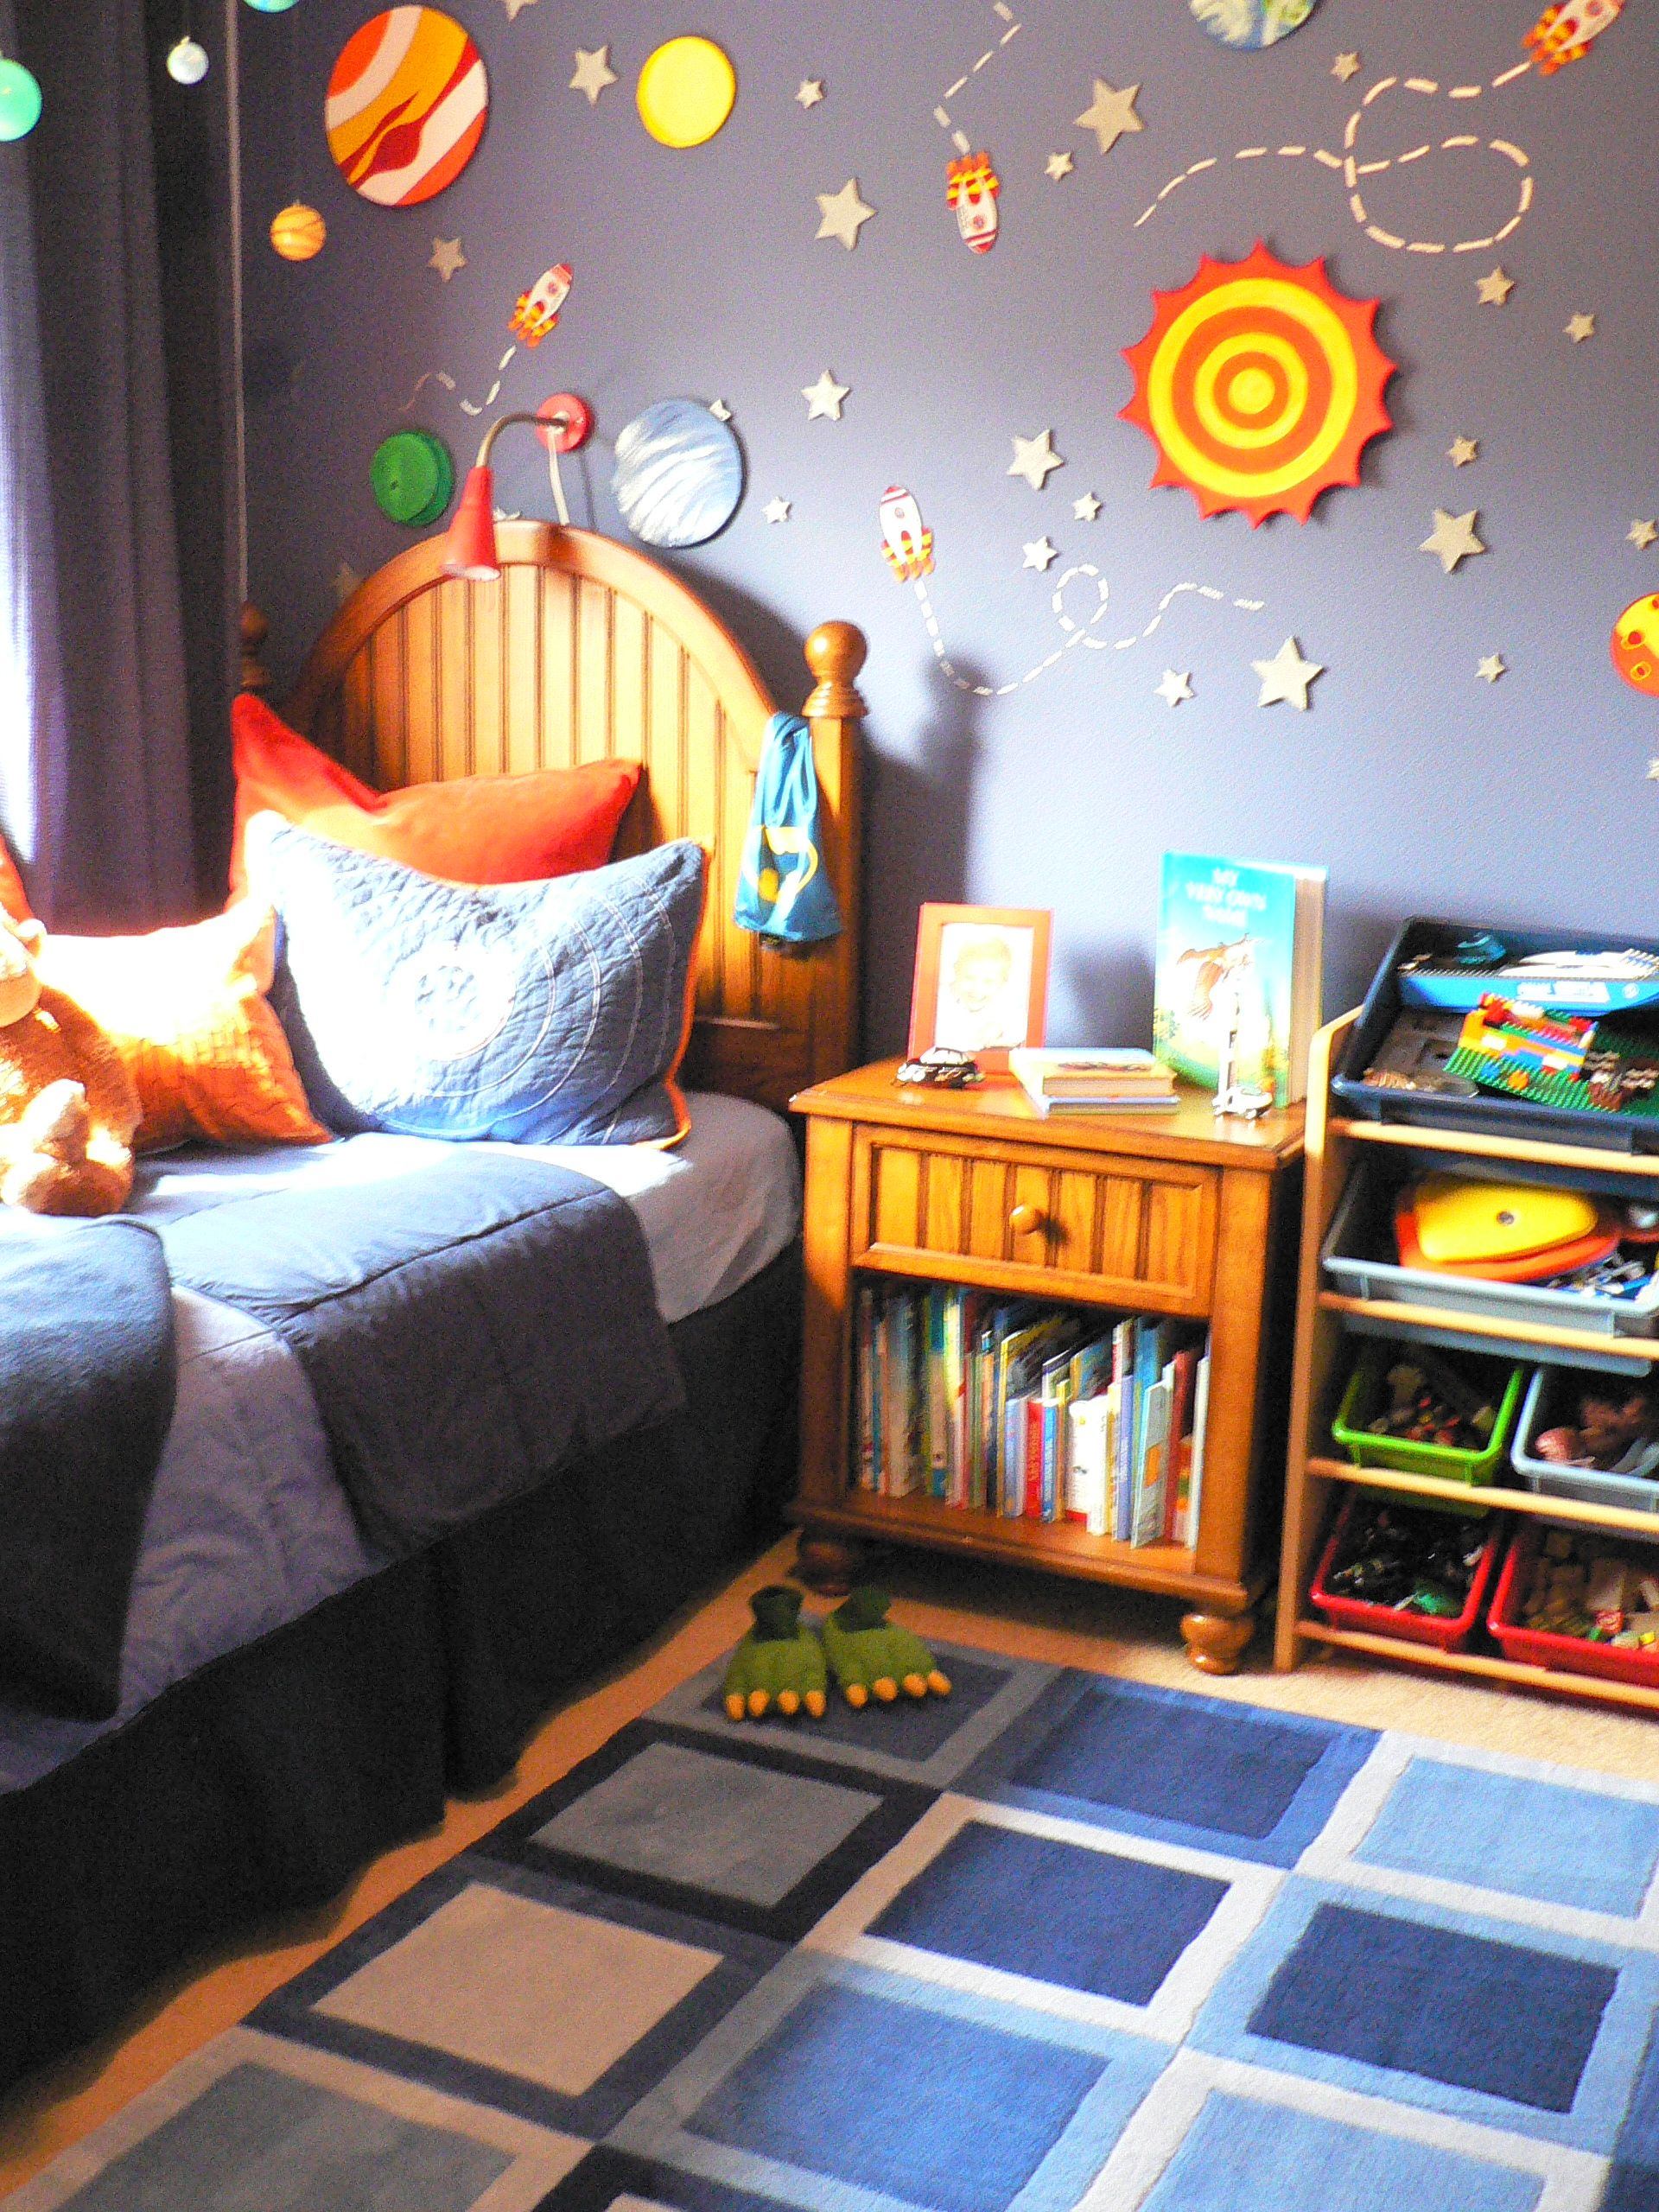 Pin By De Lavenne Design On Little Rooms Space Themed Bedroom